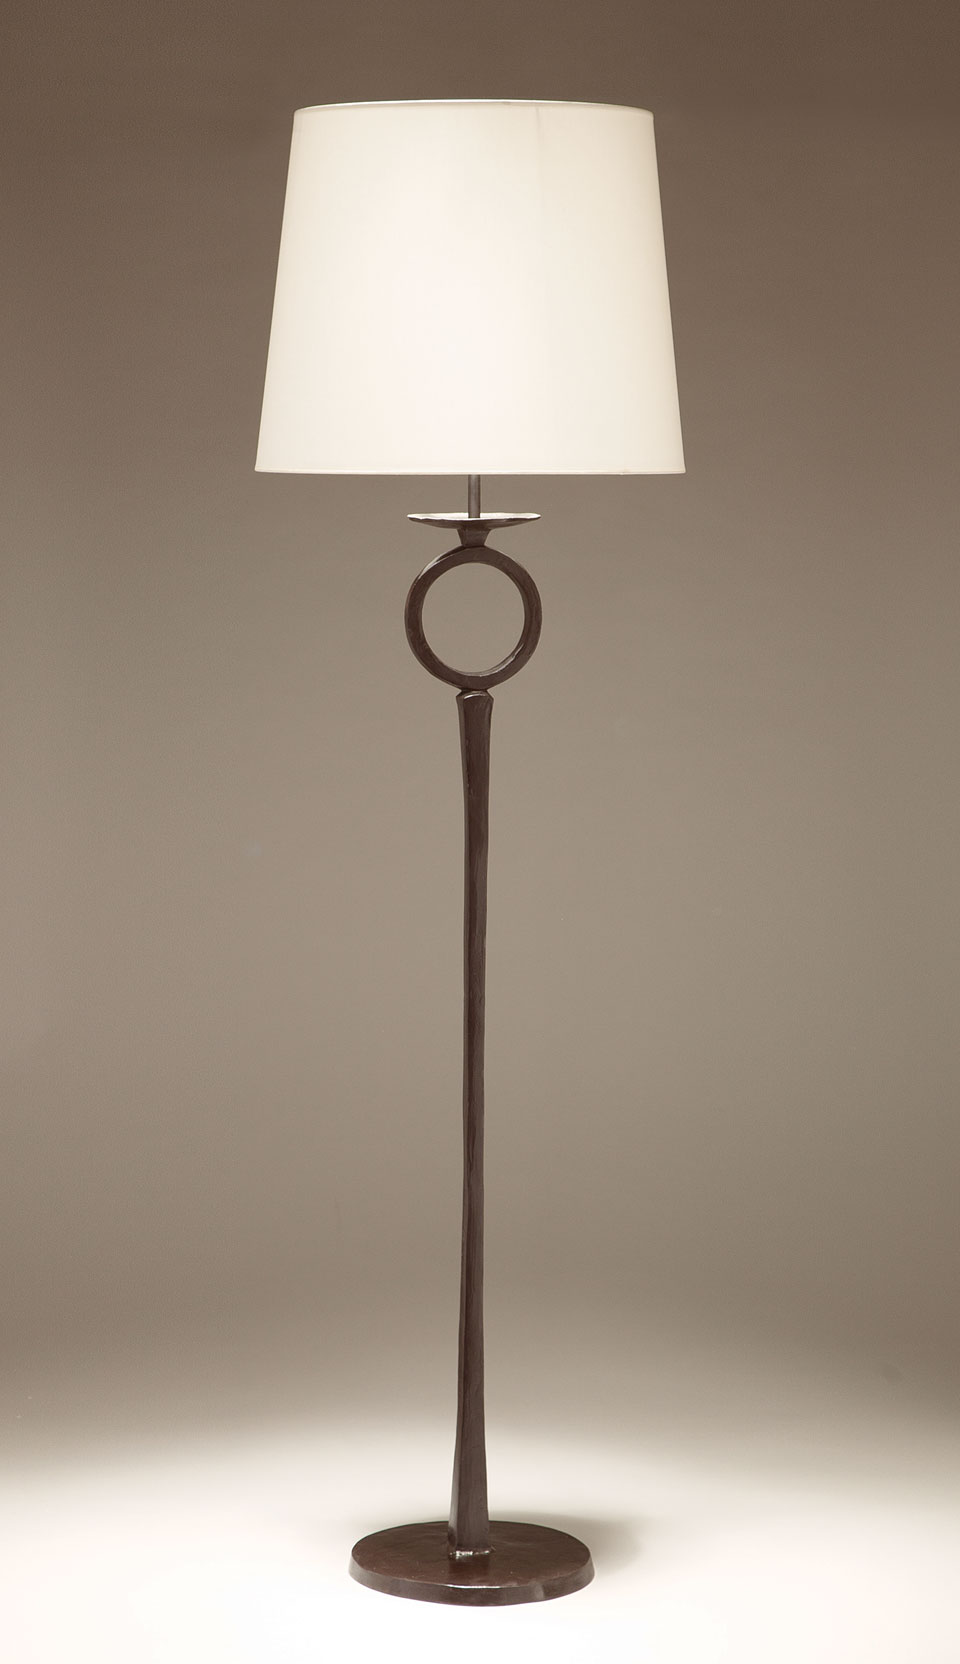 Floor lamp in solid bronze, ring on the foot Diego. Objet insolite.